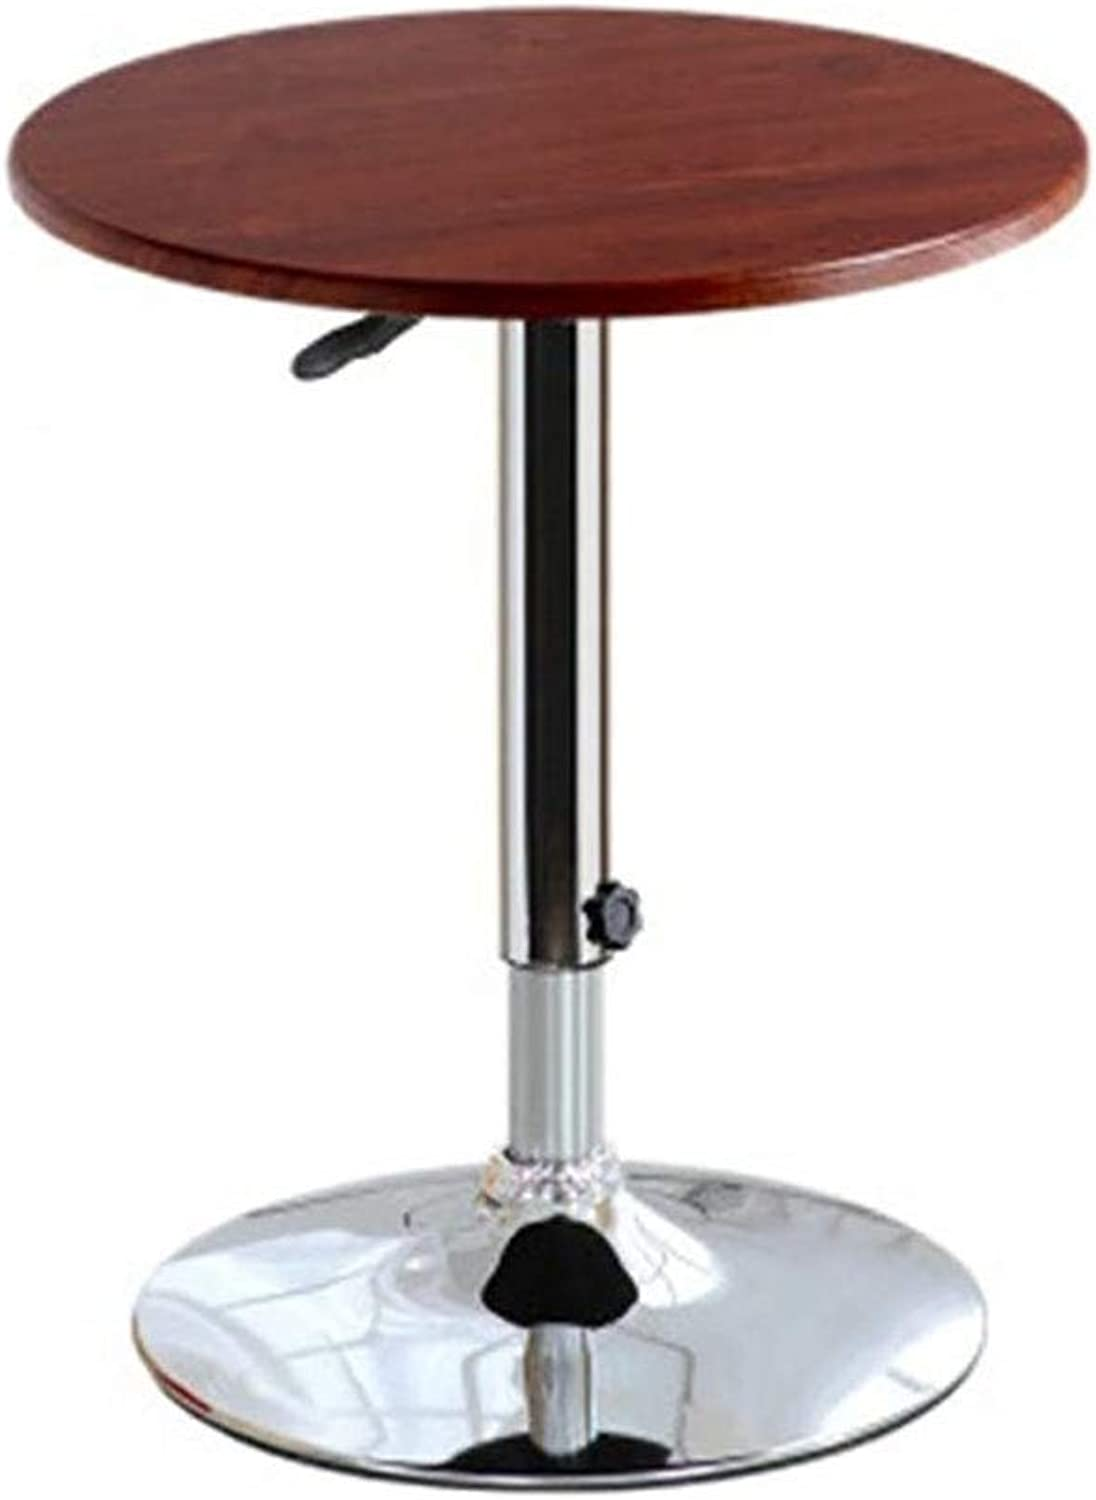 TJTG Simple Modern Small Round Table Lifting Table Coffee Table Leisure Table Round Balcony Dining Table Small Square Bar Home Office Desk (Size   60CM)